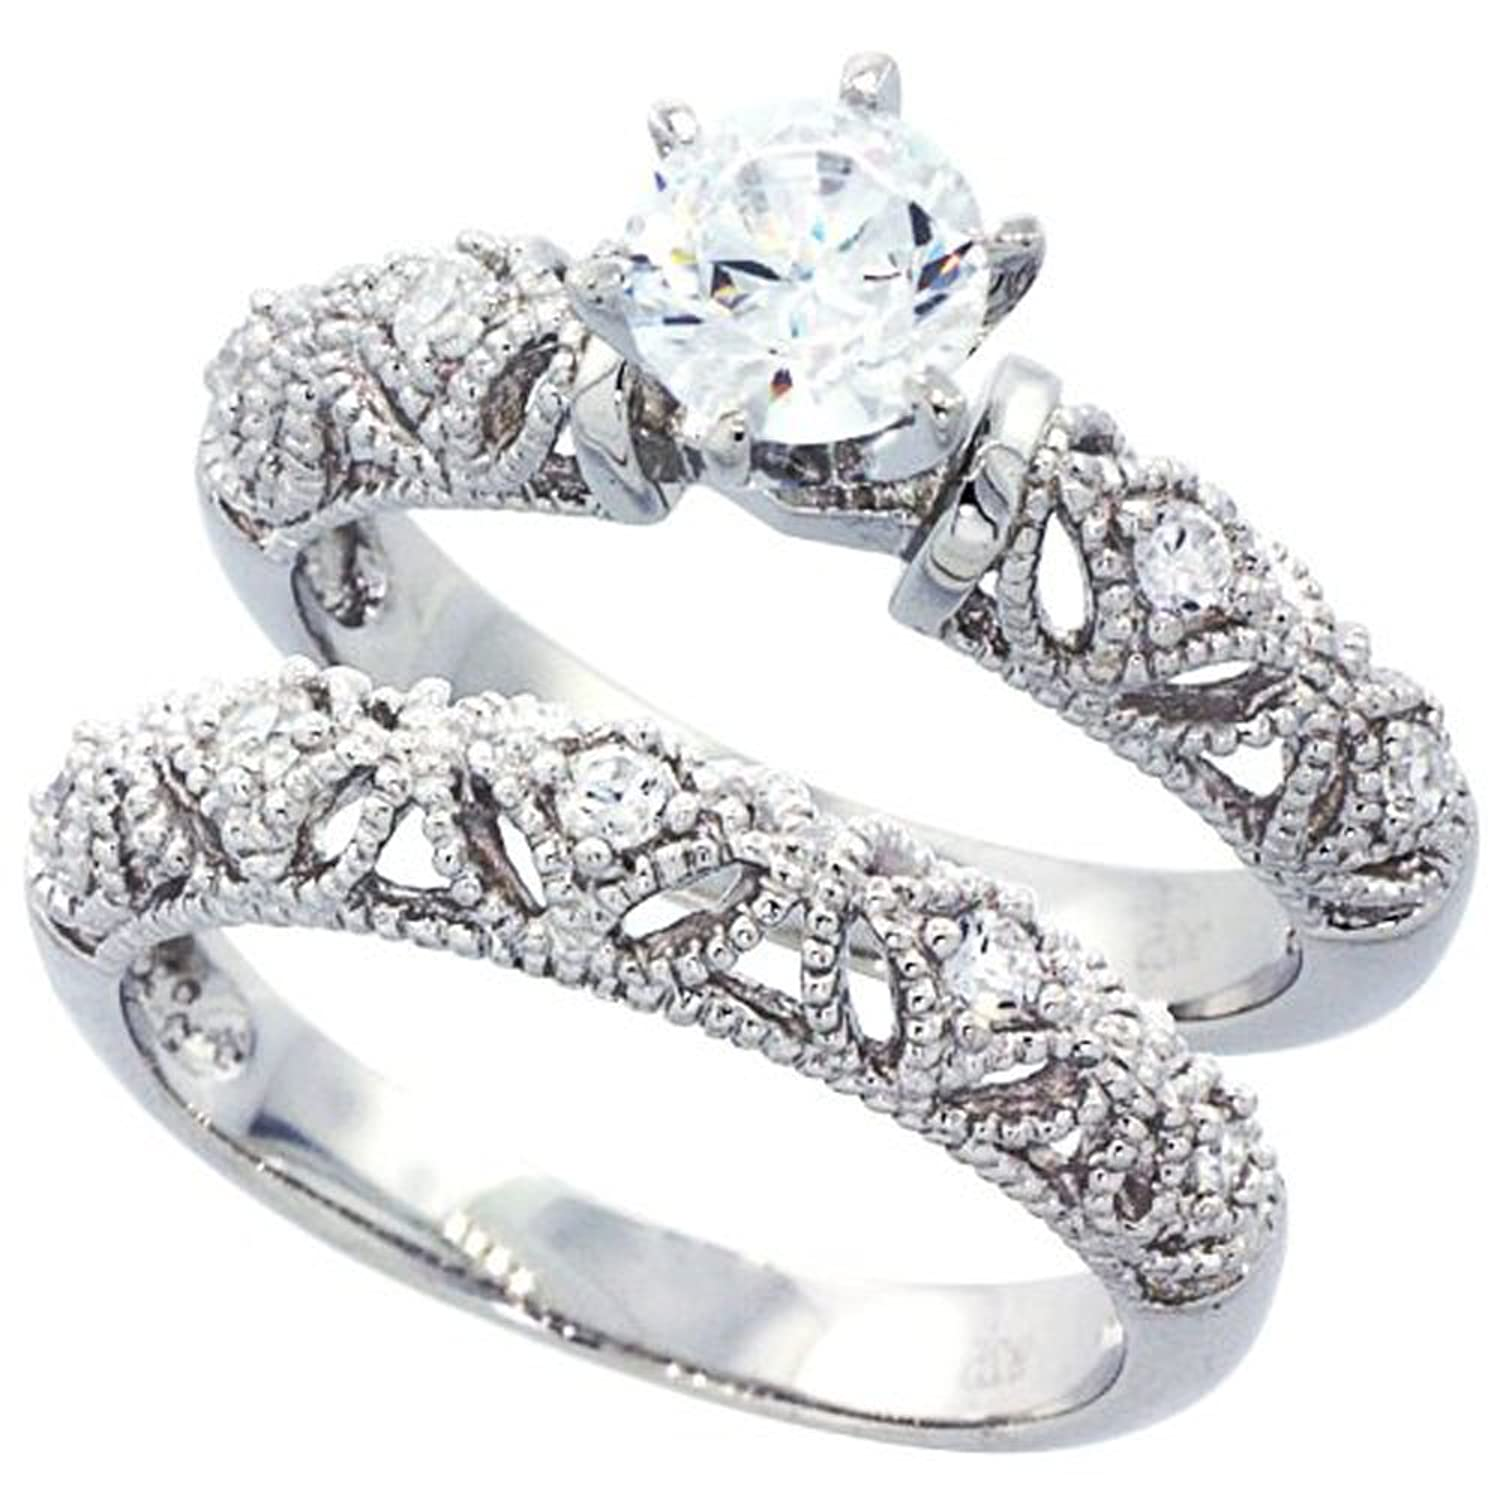 rings designer size adjustable ring couple fashion men forever pair love product jewelry plated silver wedding